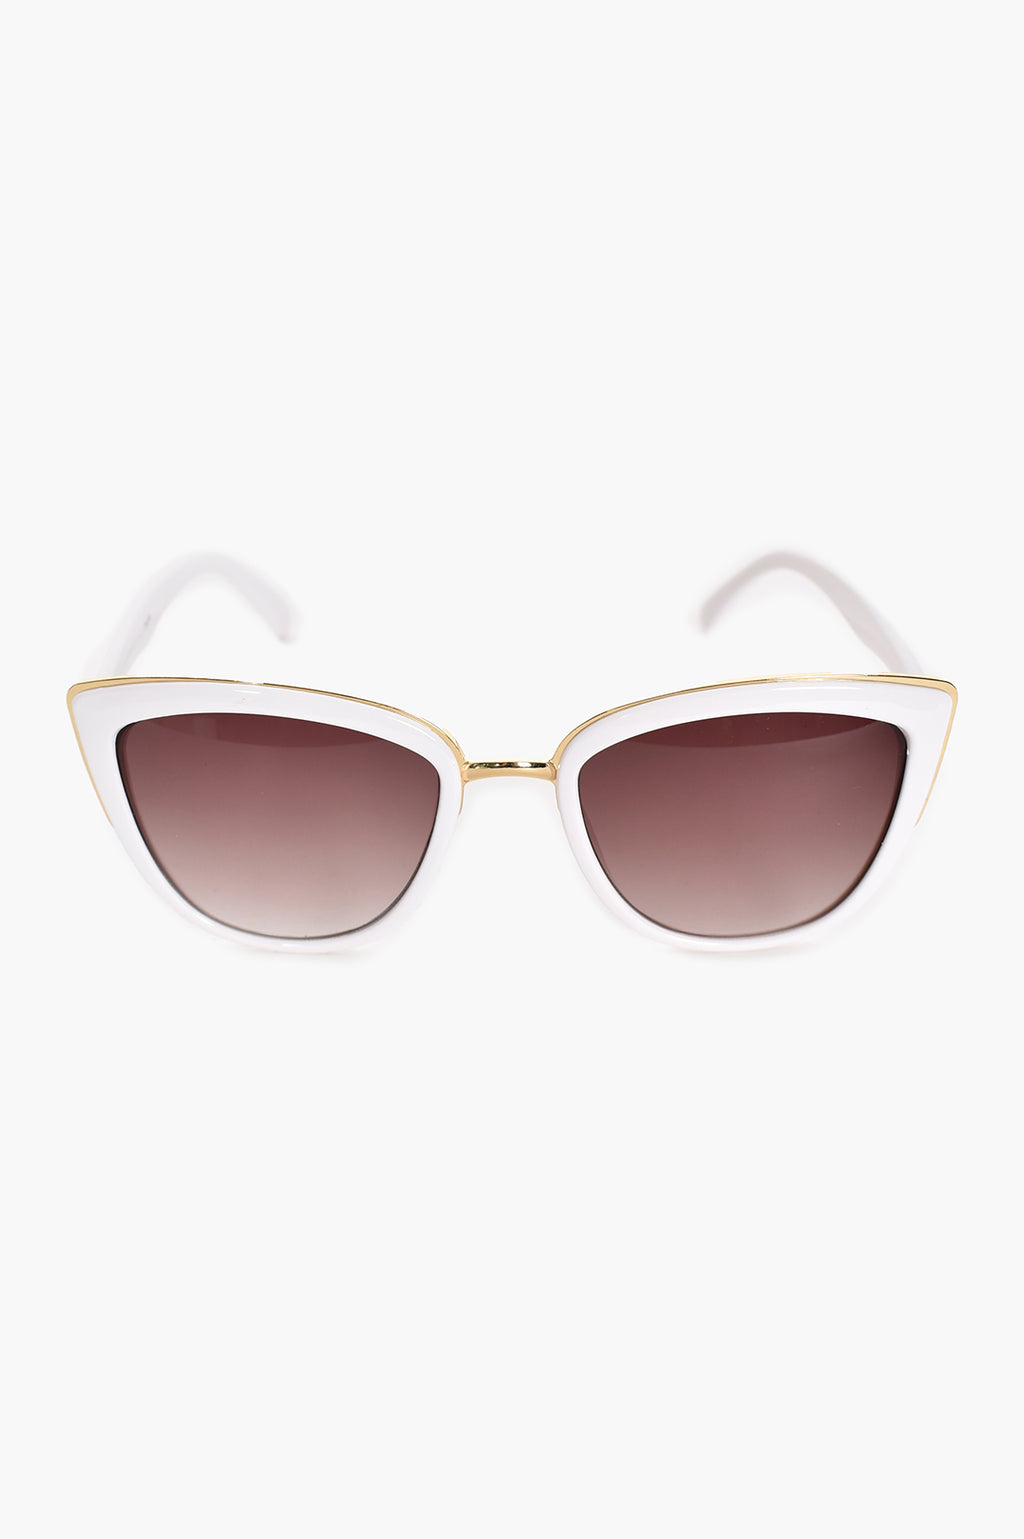 SANDY DAYS | SUNGLASSES